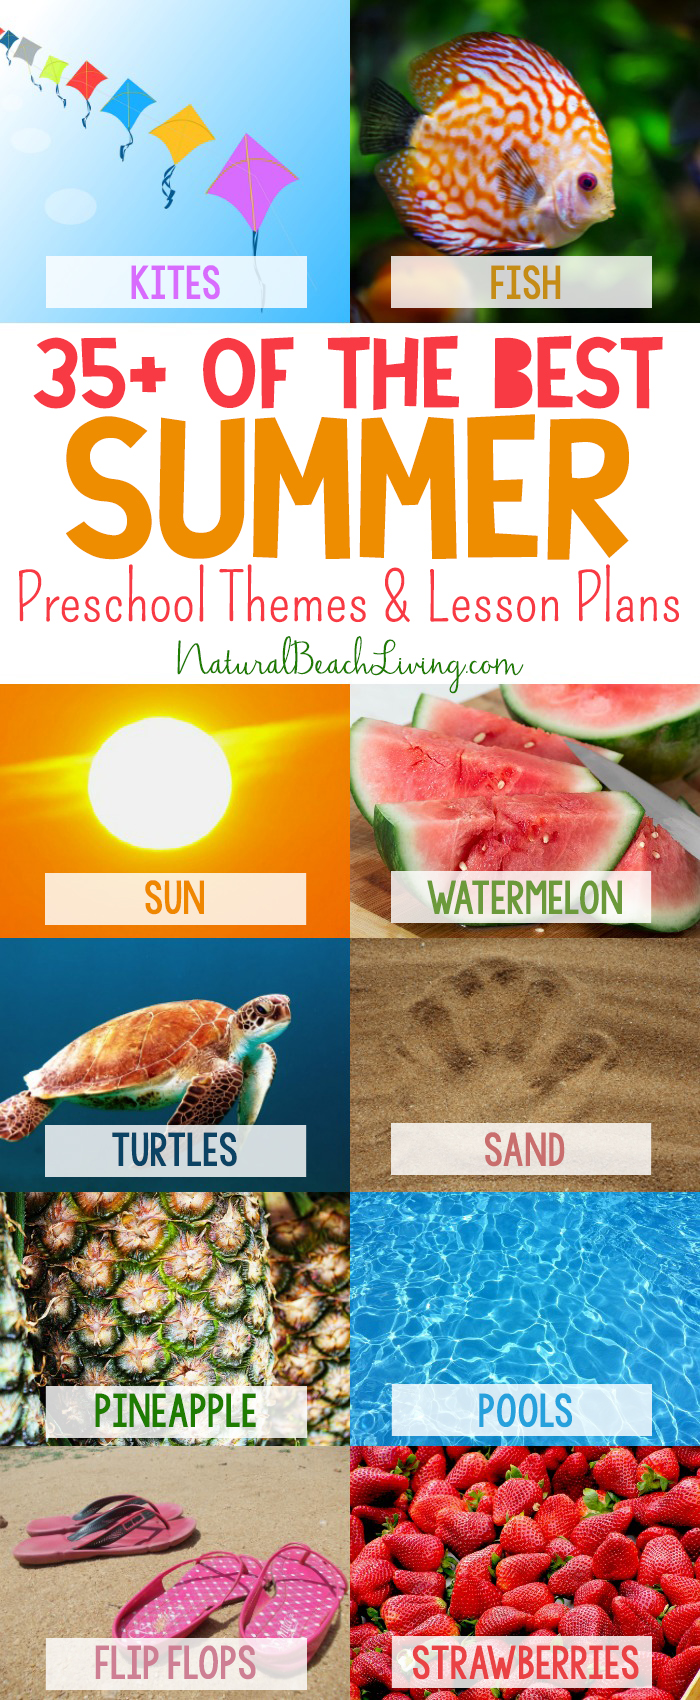 35+ Best Summer Preschool Themes and Activities, Free Printables, Preschool  Lessons and Ideas